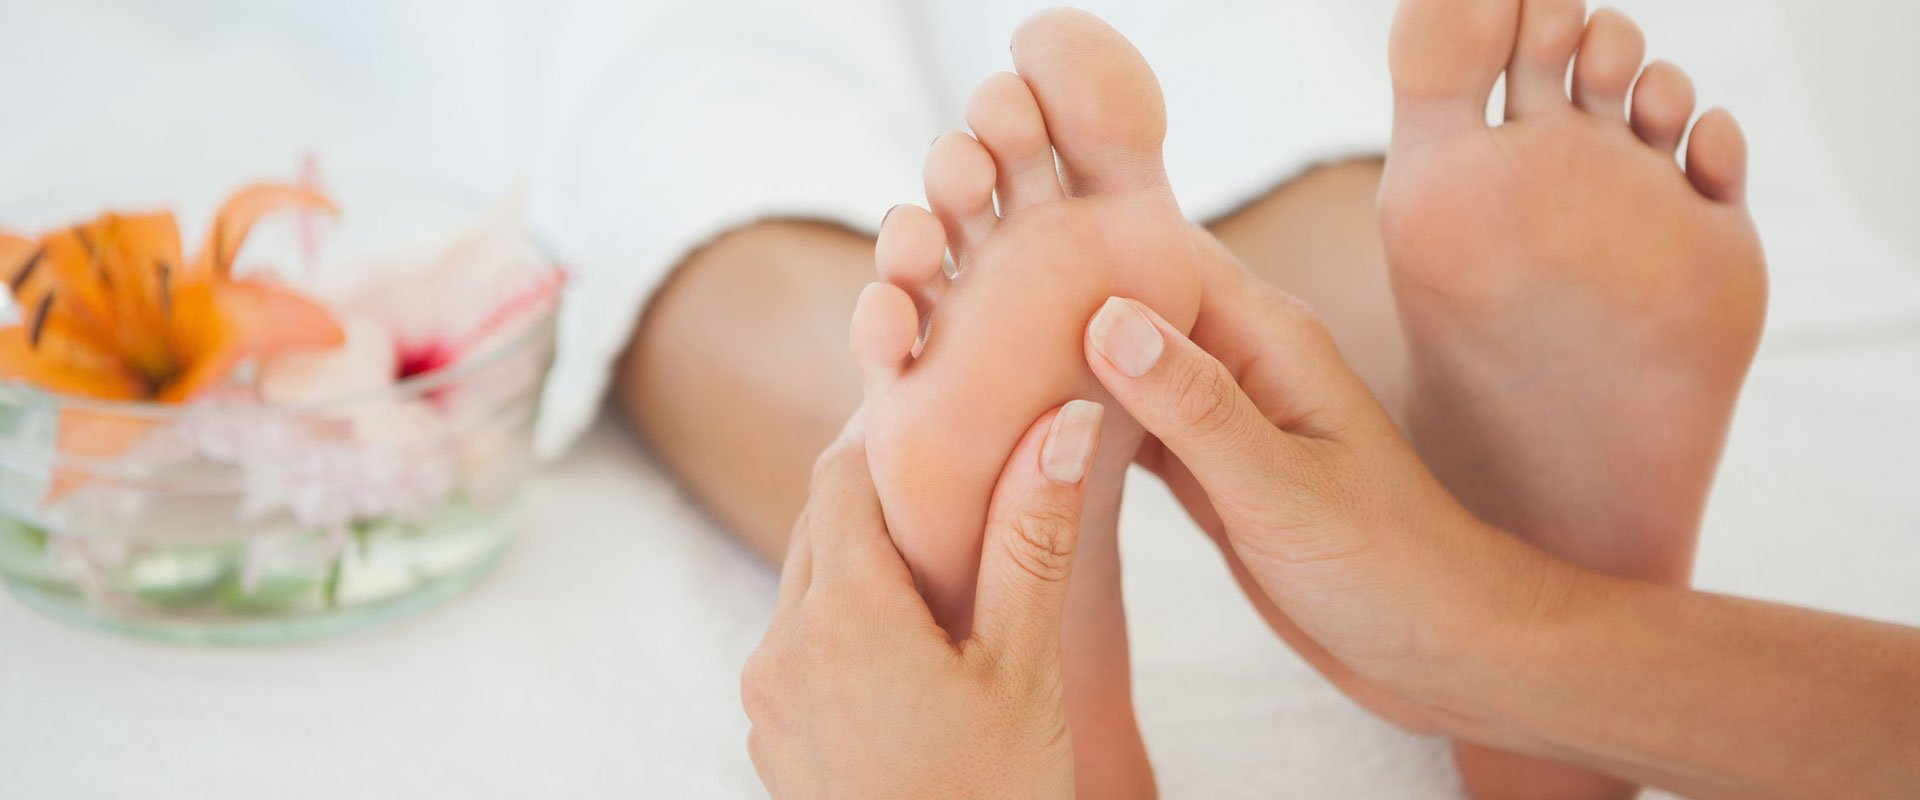 foot pain massage